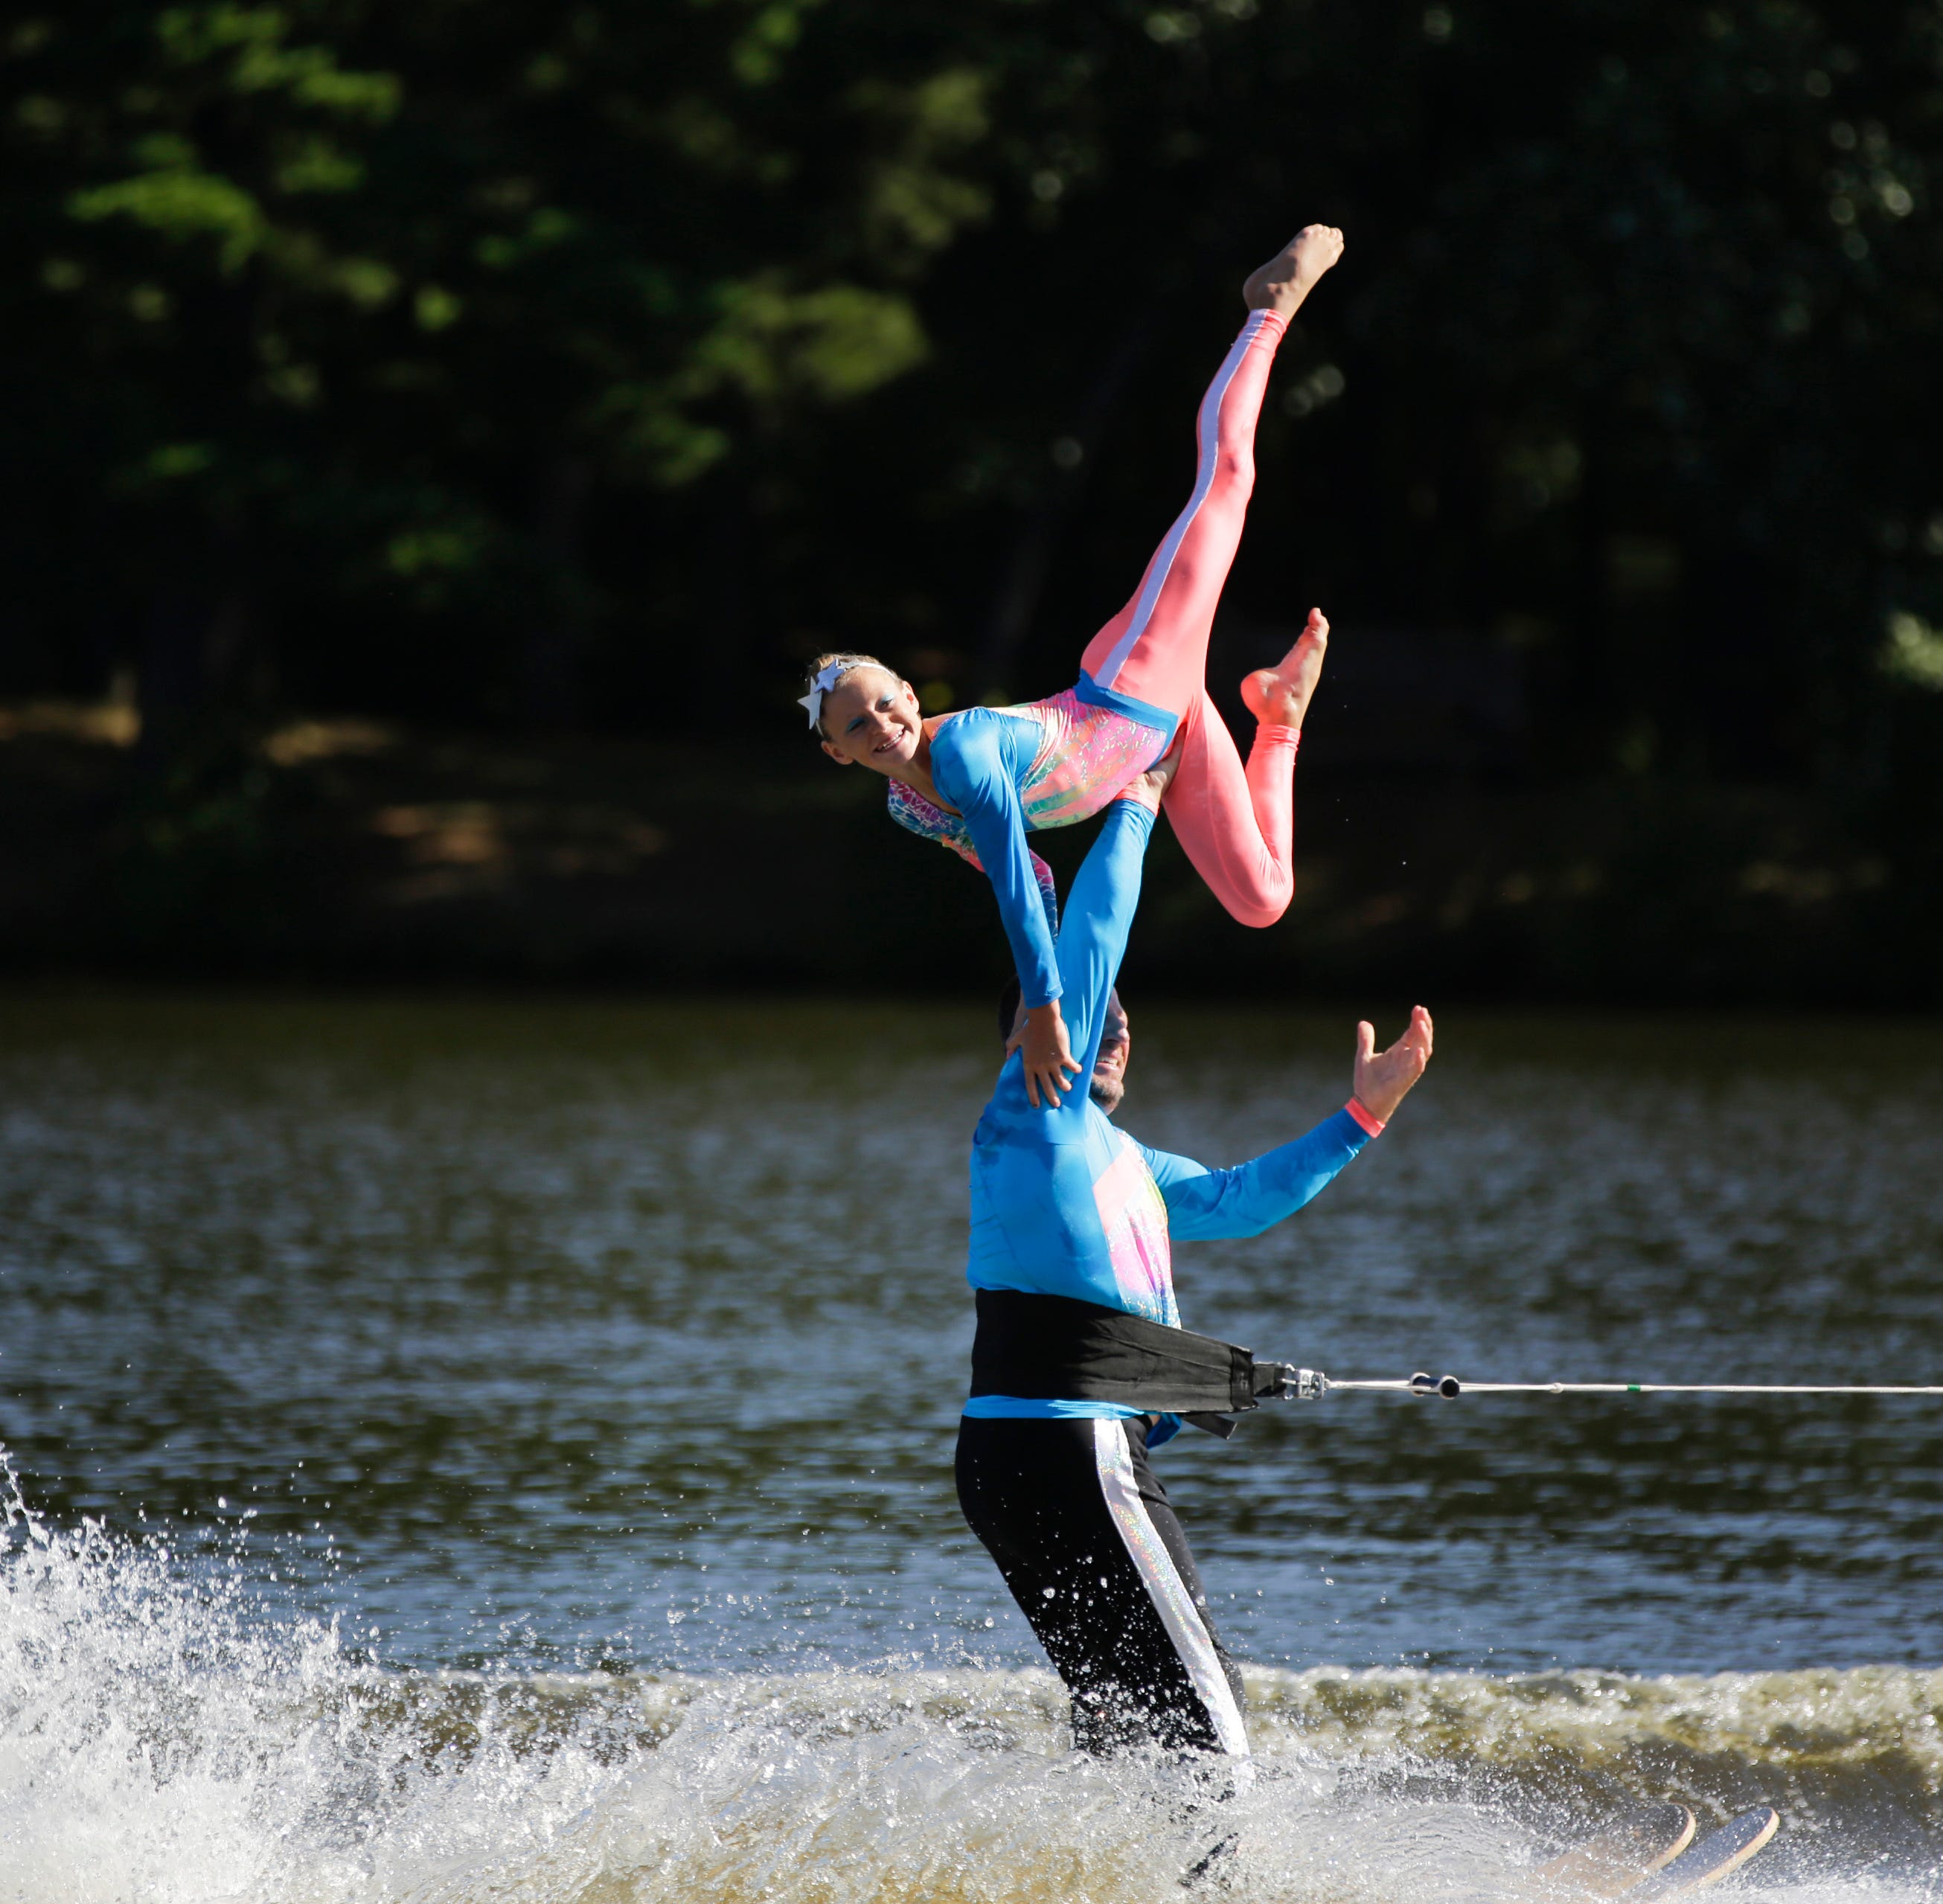 Wisconsin State Water Ski Show Championships make a splash at Lake Wazeecha